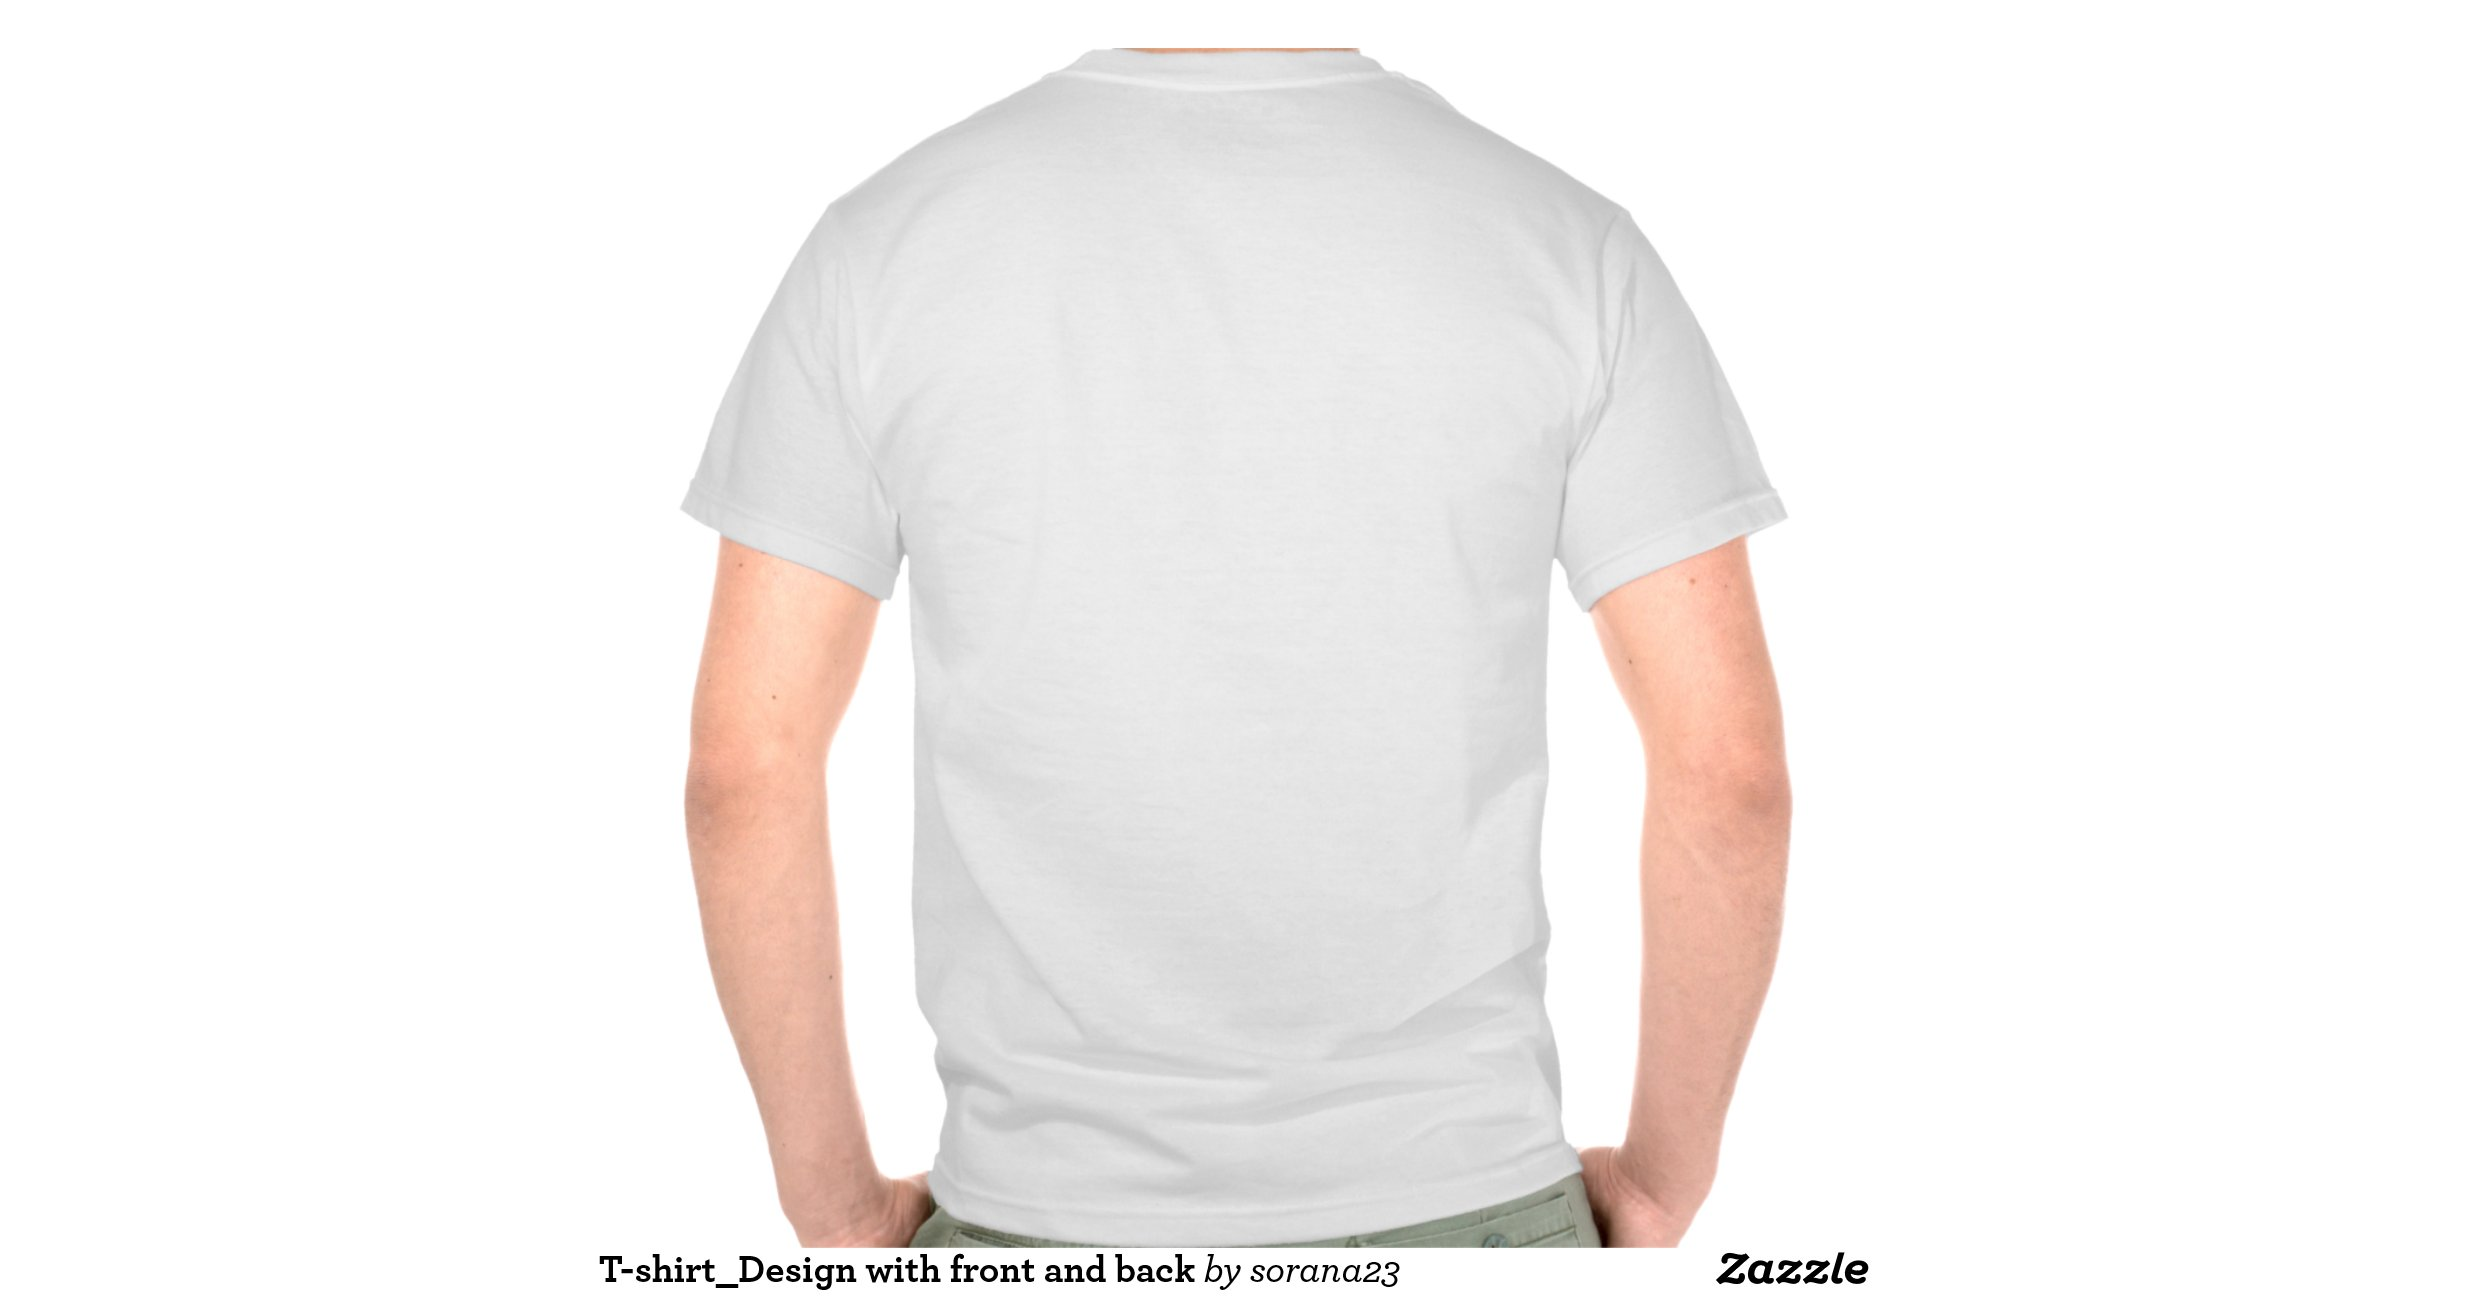 T shirt design with front and back shirts zazzle Design t shirt australia